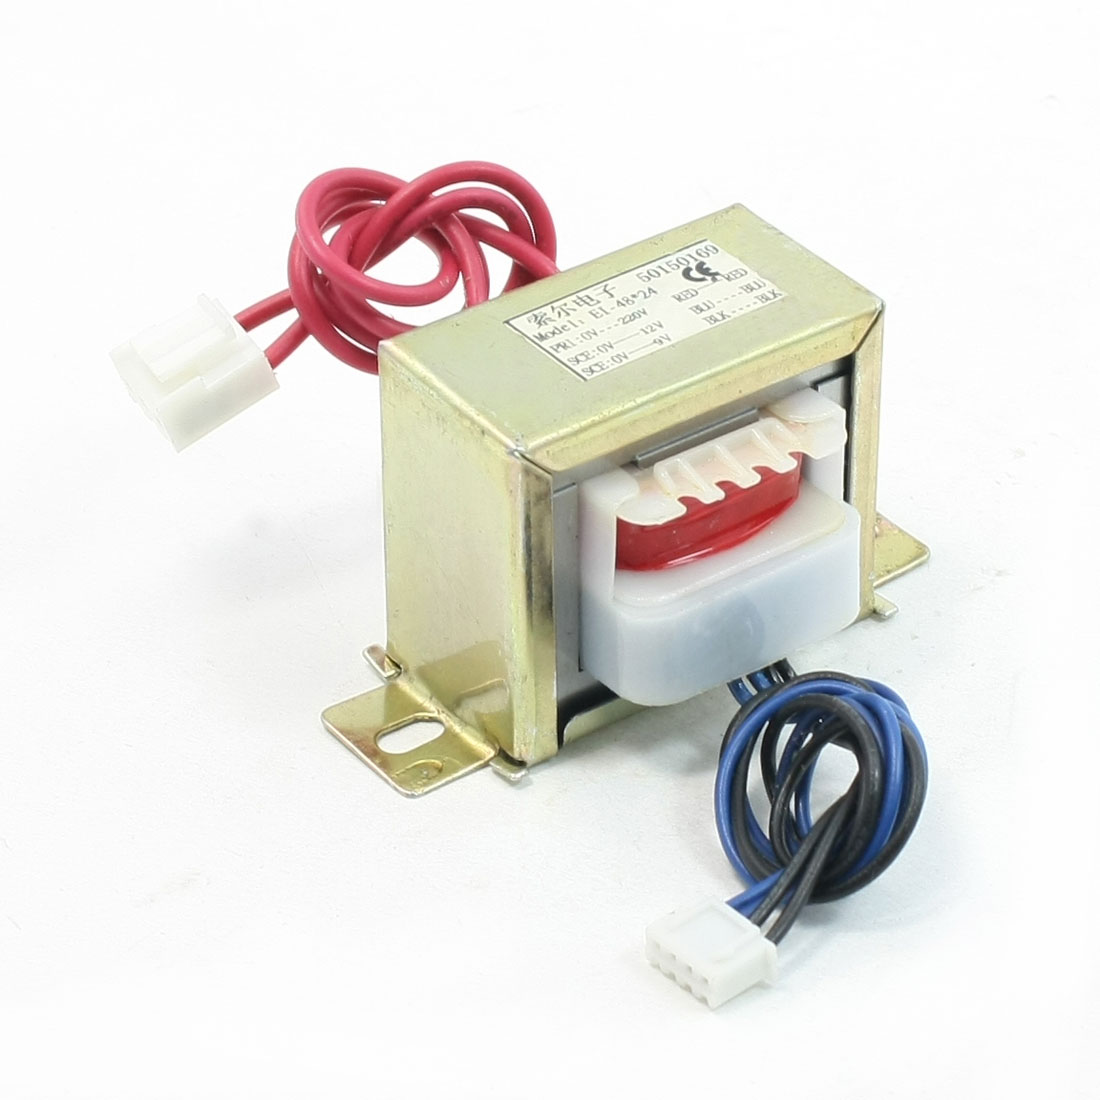 220VAC to DC 9V 0.65A EI Core Vertical Mounted Electric Parts Supply Transformer